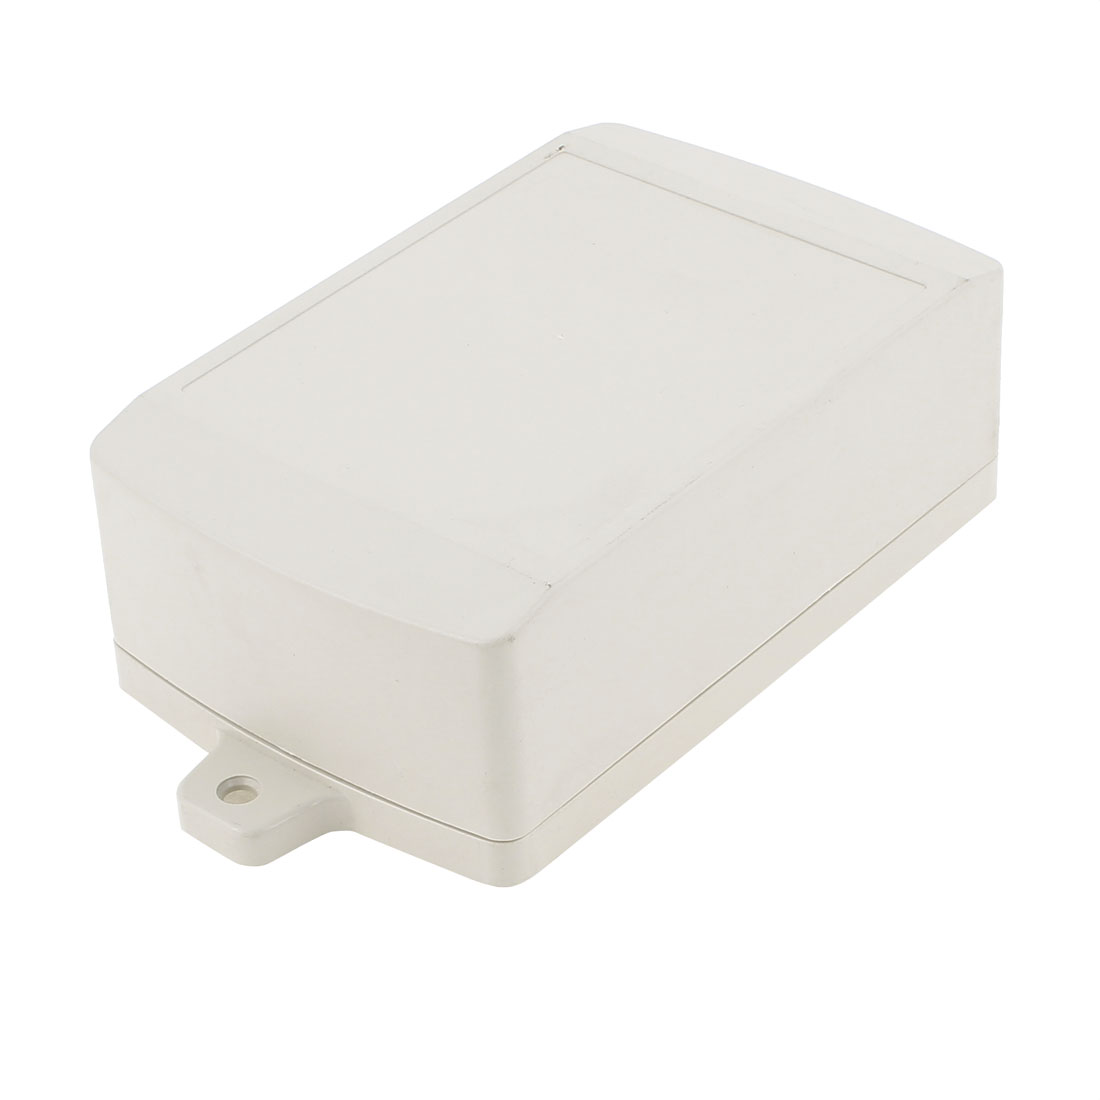 160mm x 100mm x 56mm Dustproof IP65 Junction Box Terminal Connect Enclosure